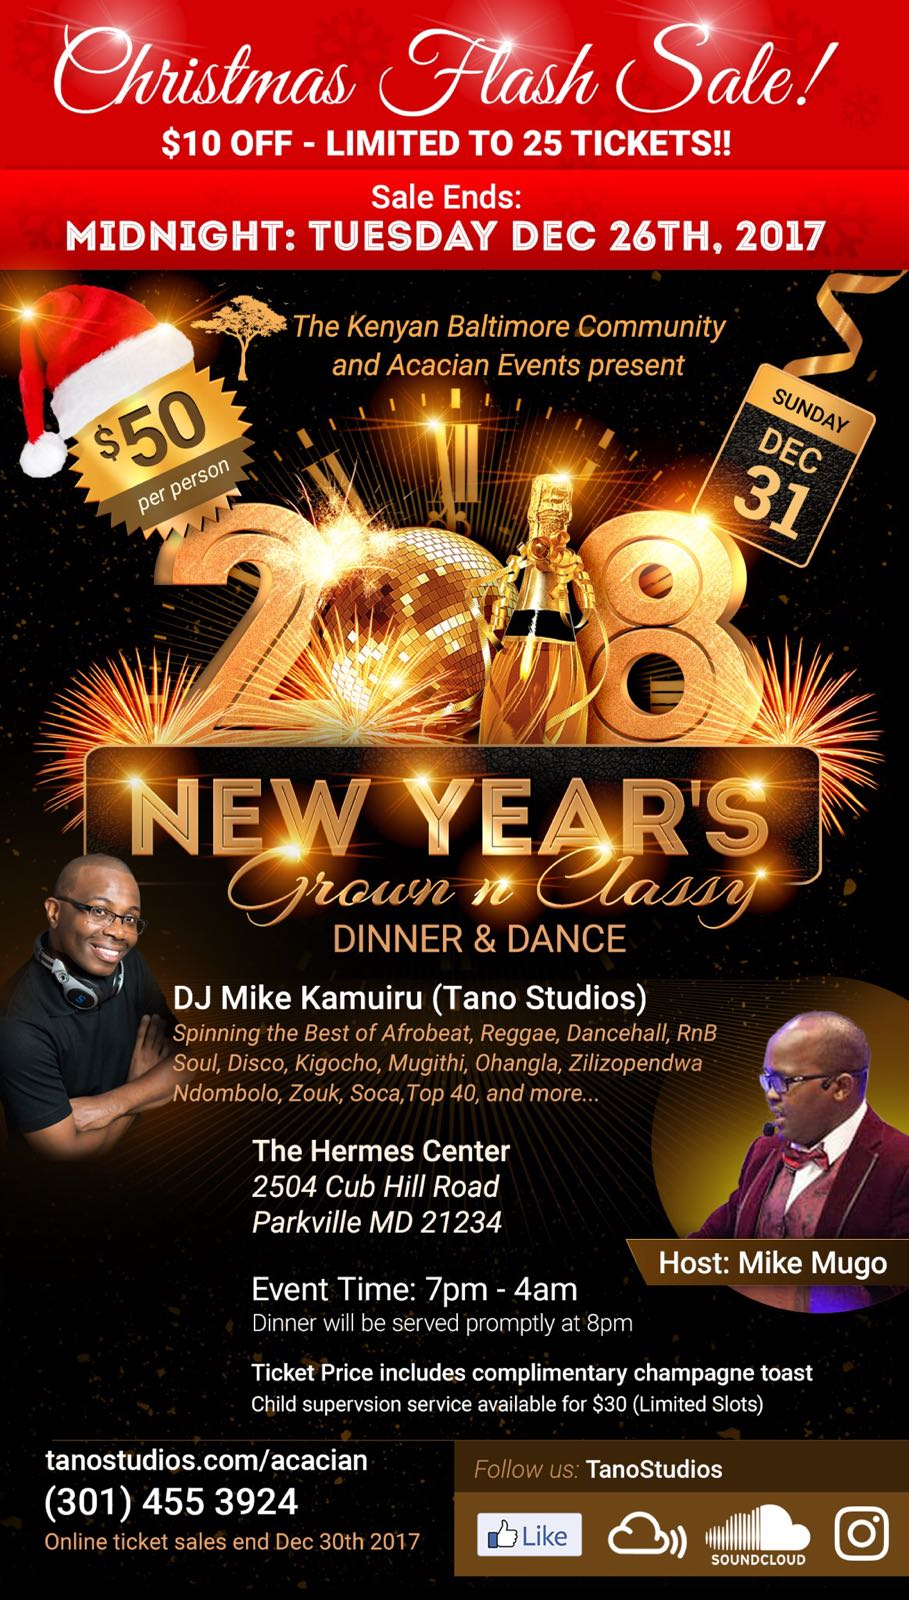 New Year's Eve Celebrations - DJ Mike Kamuiru